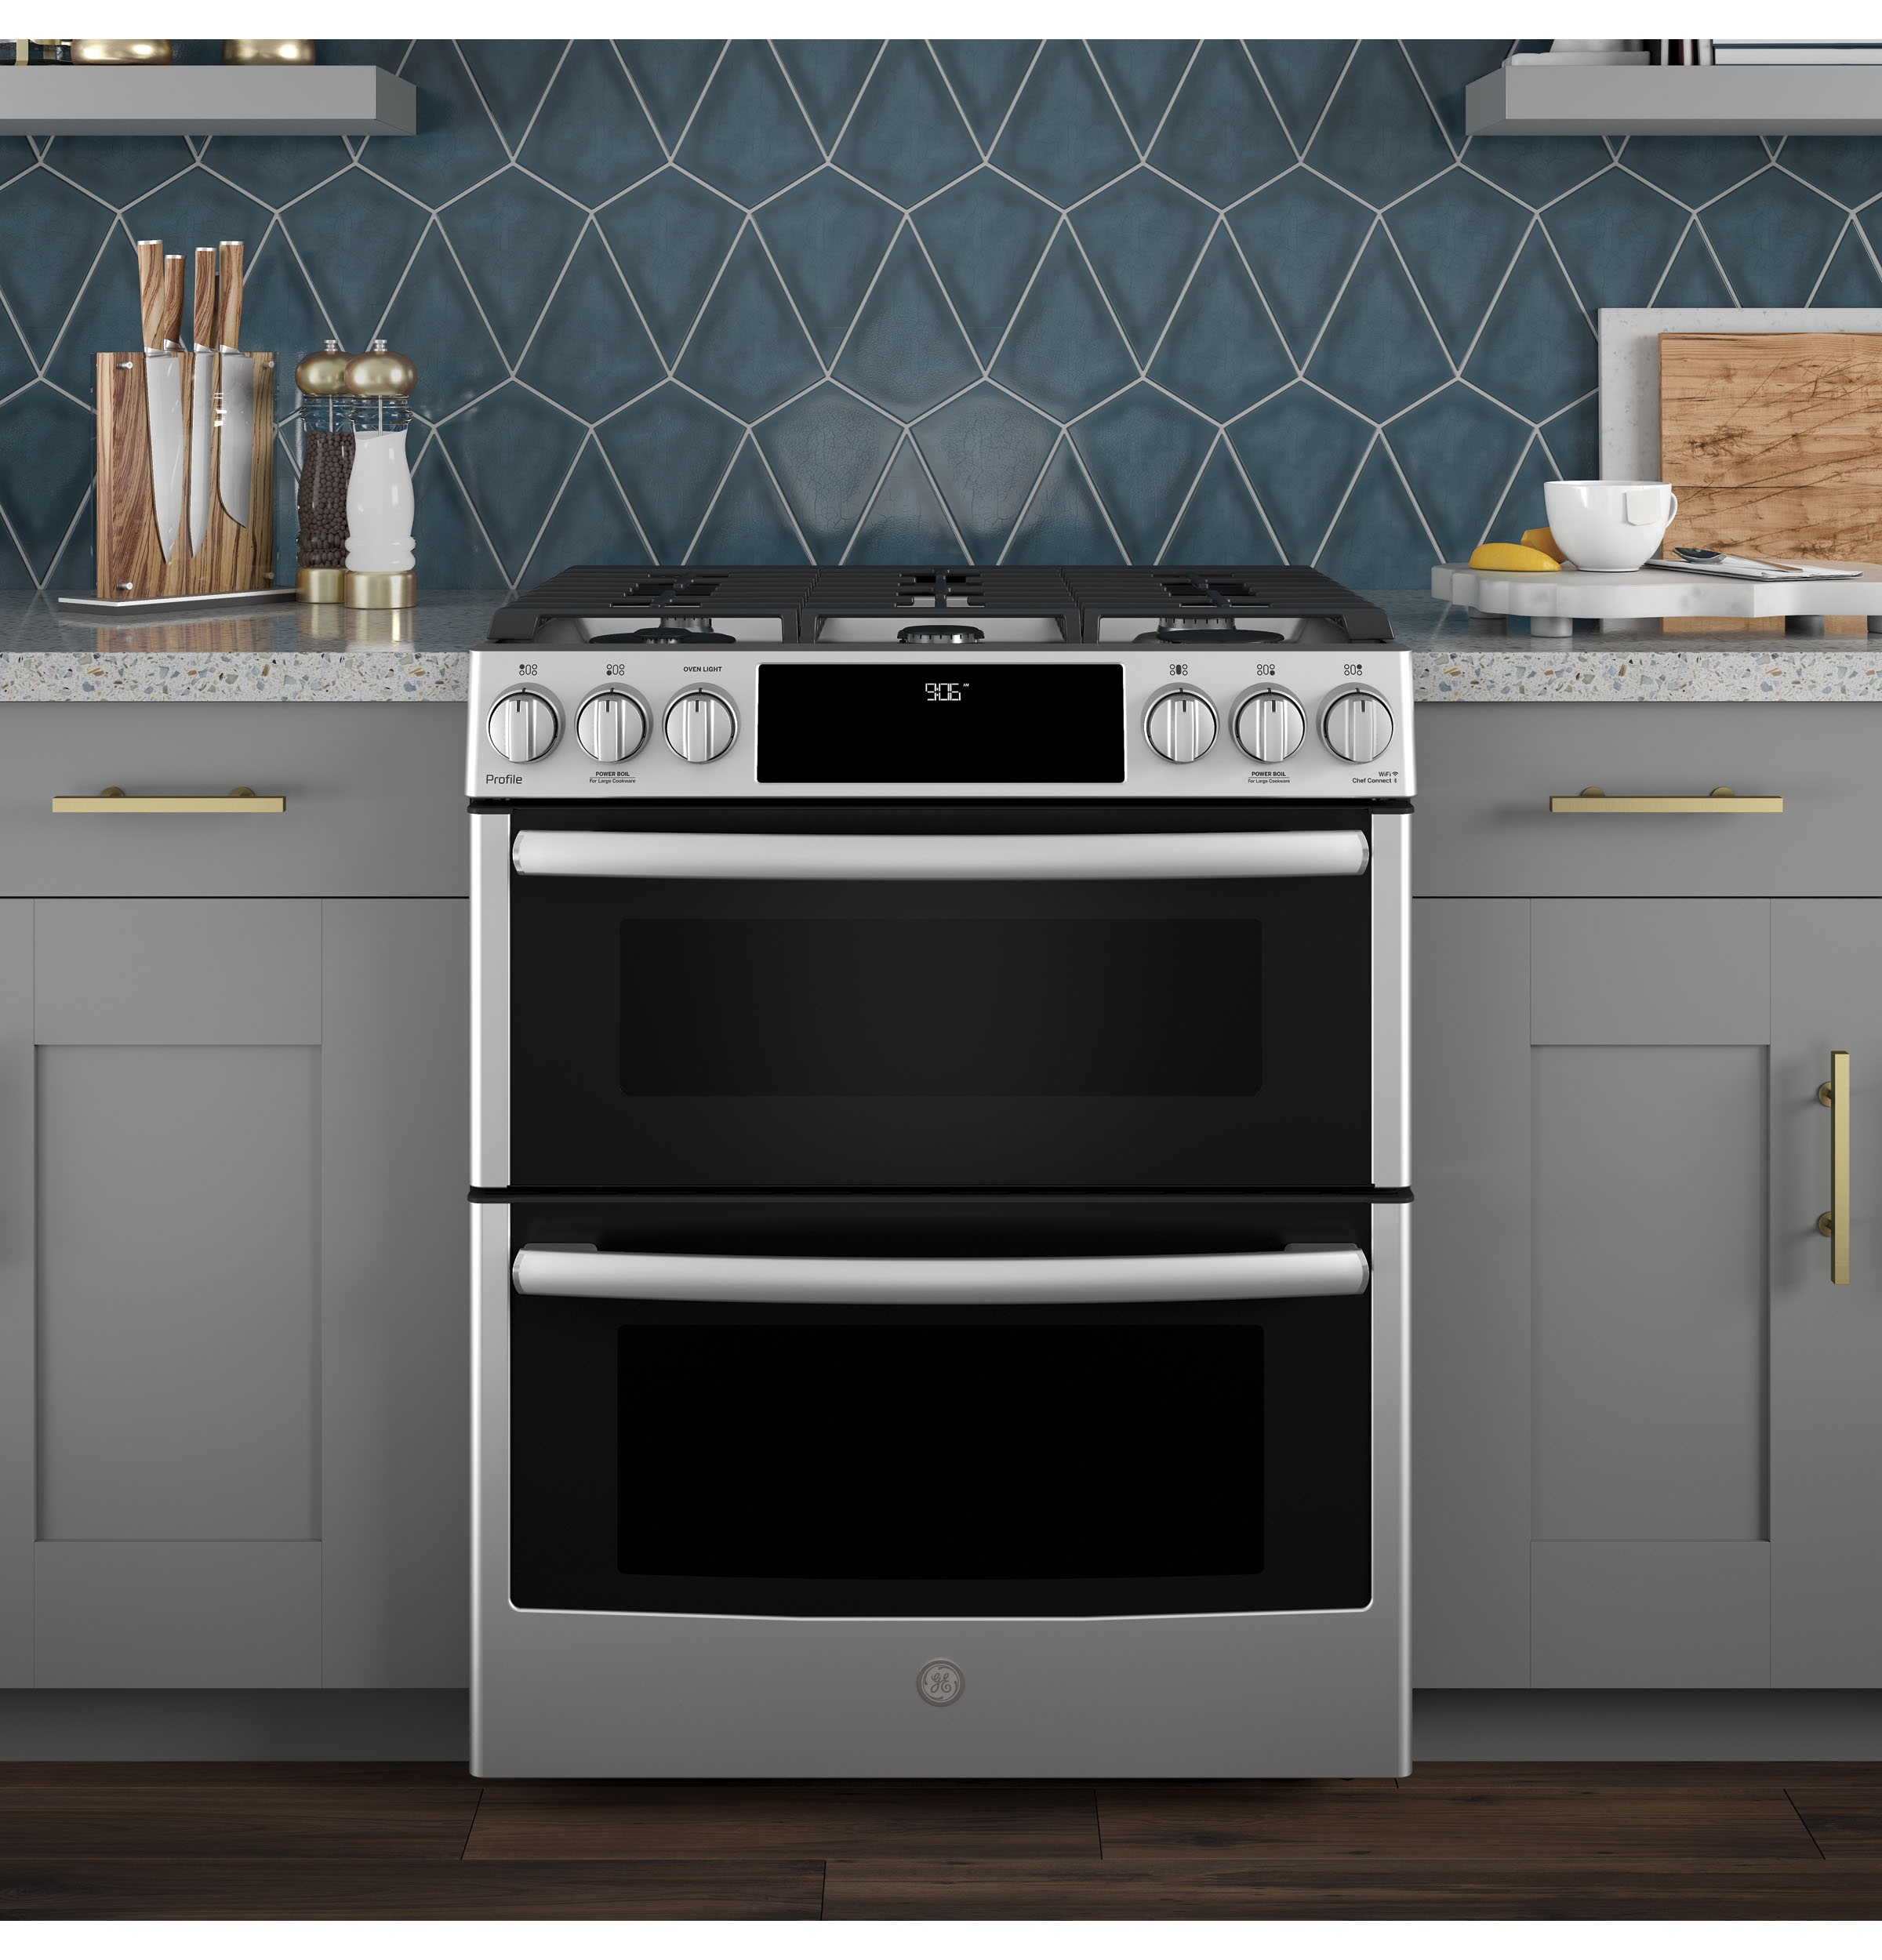 cleaning your oven with steam clean from ge appliances blog bray scarff appliance kitchen specialists bray scarff appliance kitchen specialists